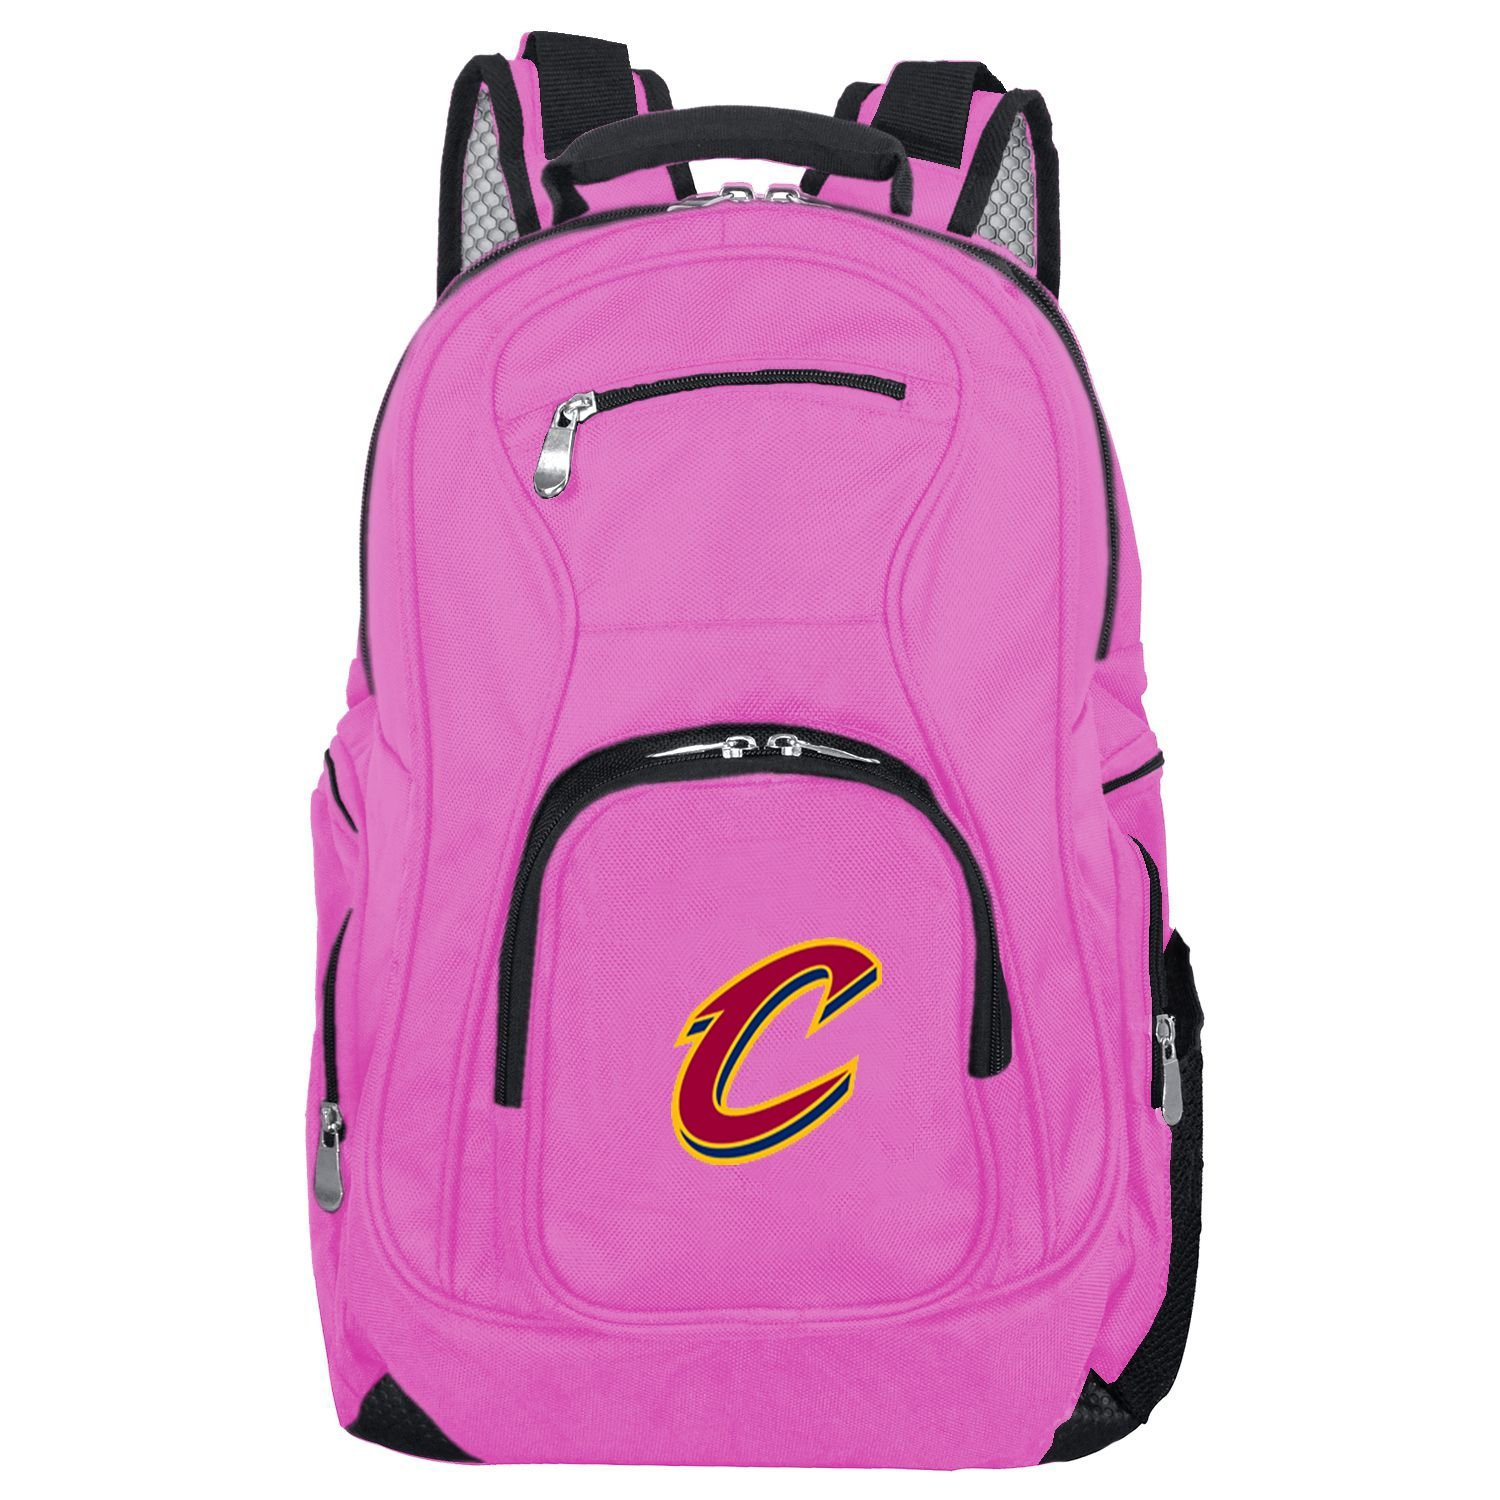 NBA Cleveland Cavaliers Voyager Laptop Backpack, 19-inches, Pink